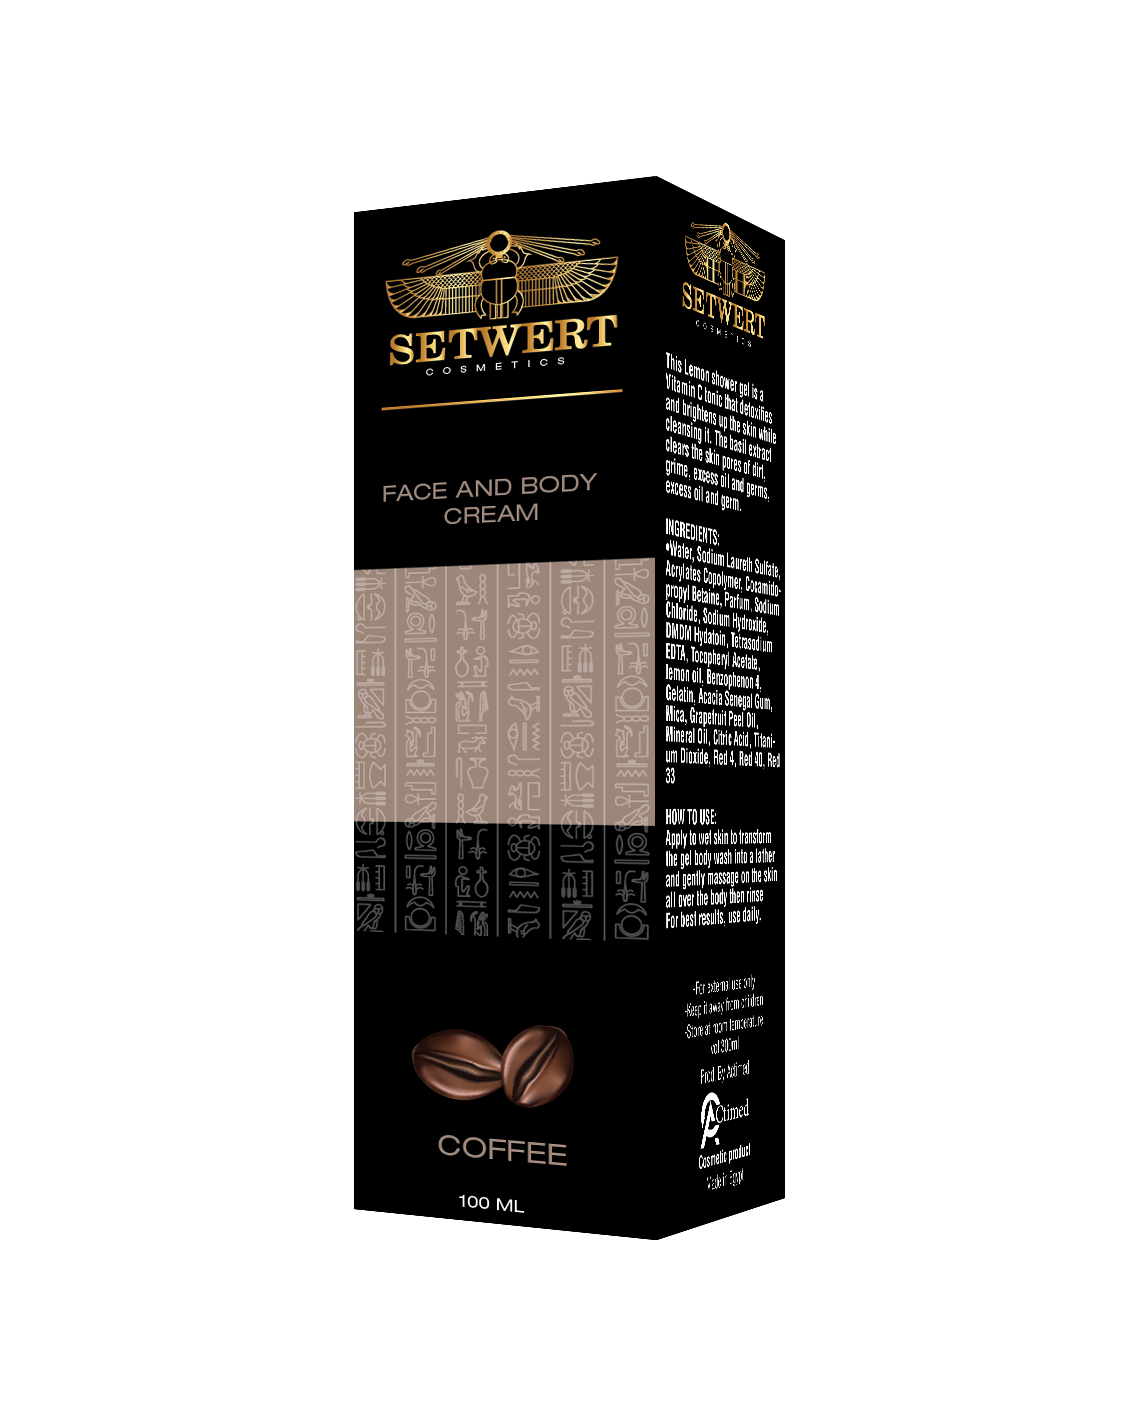 Setwert  face and body cream with coffee